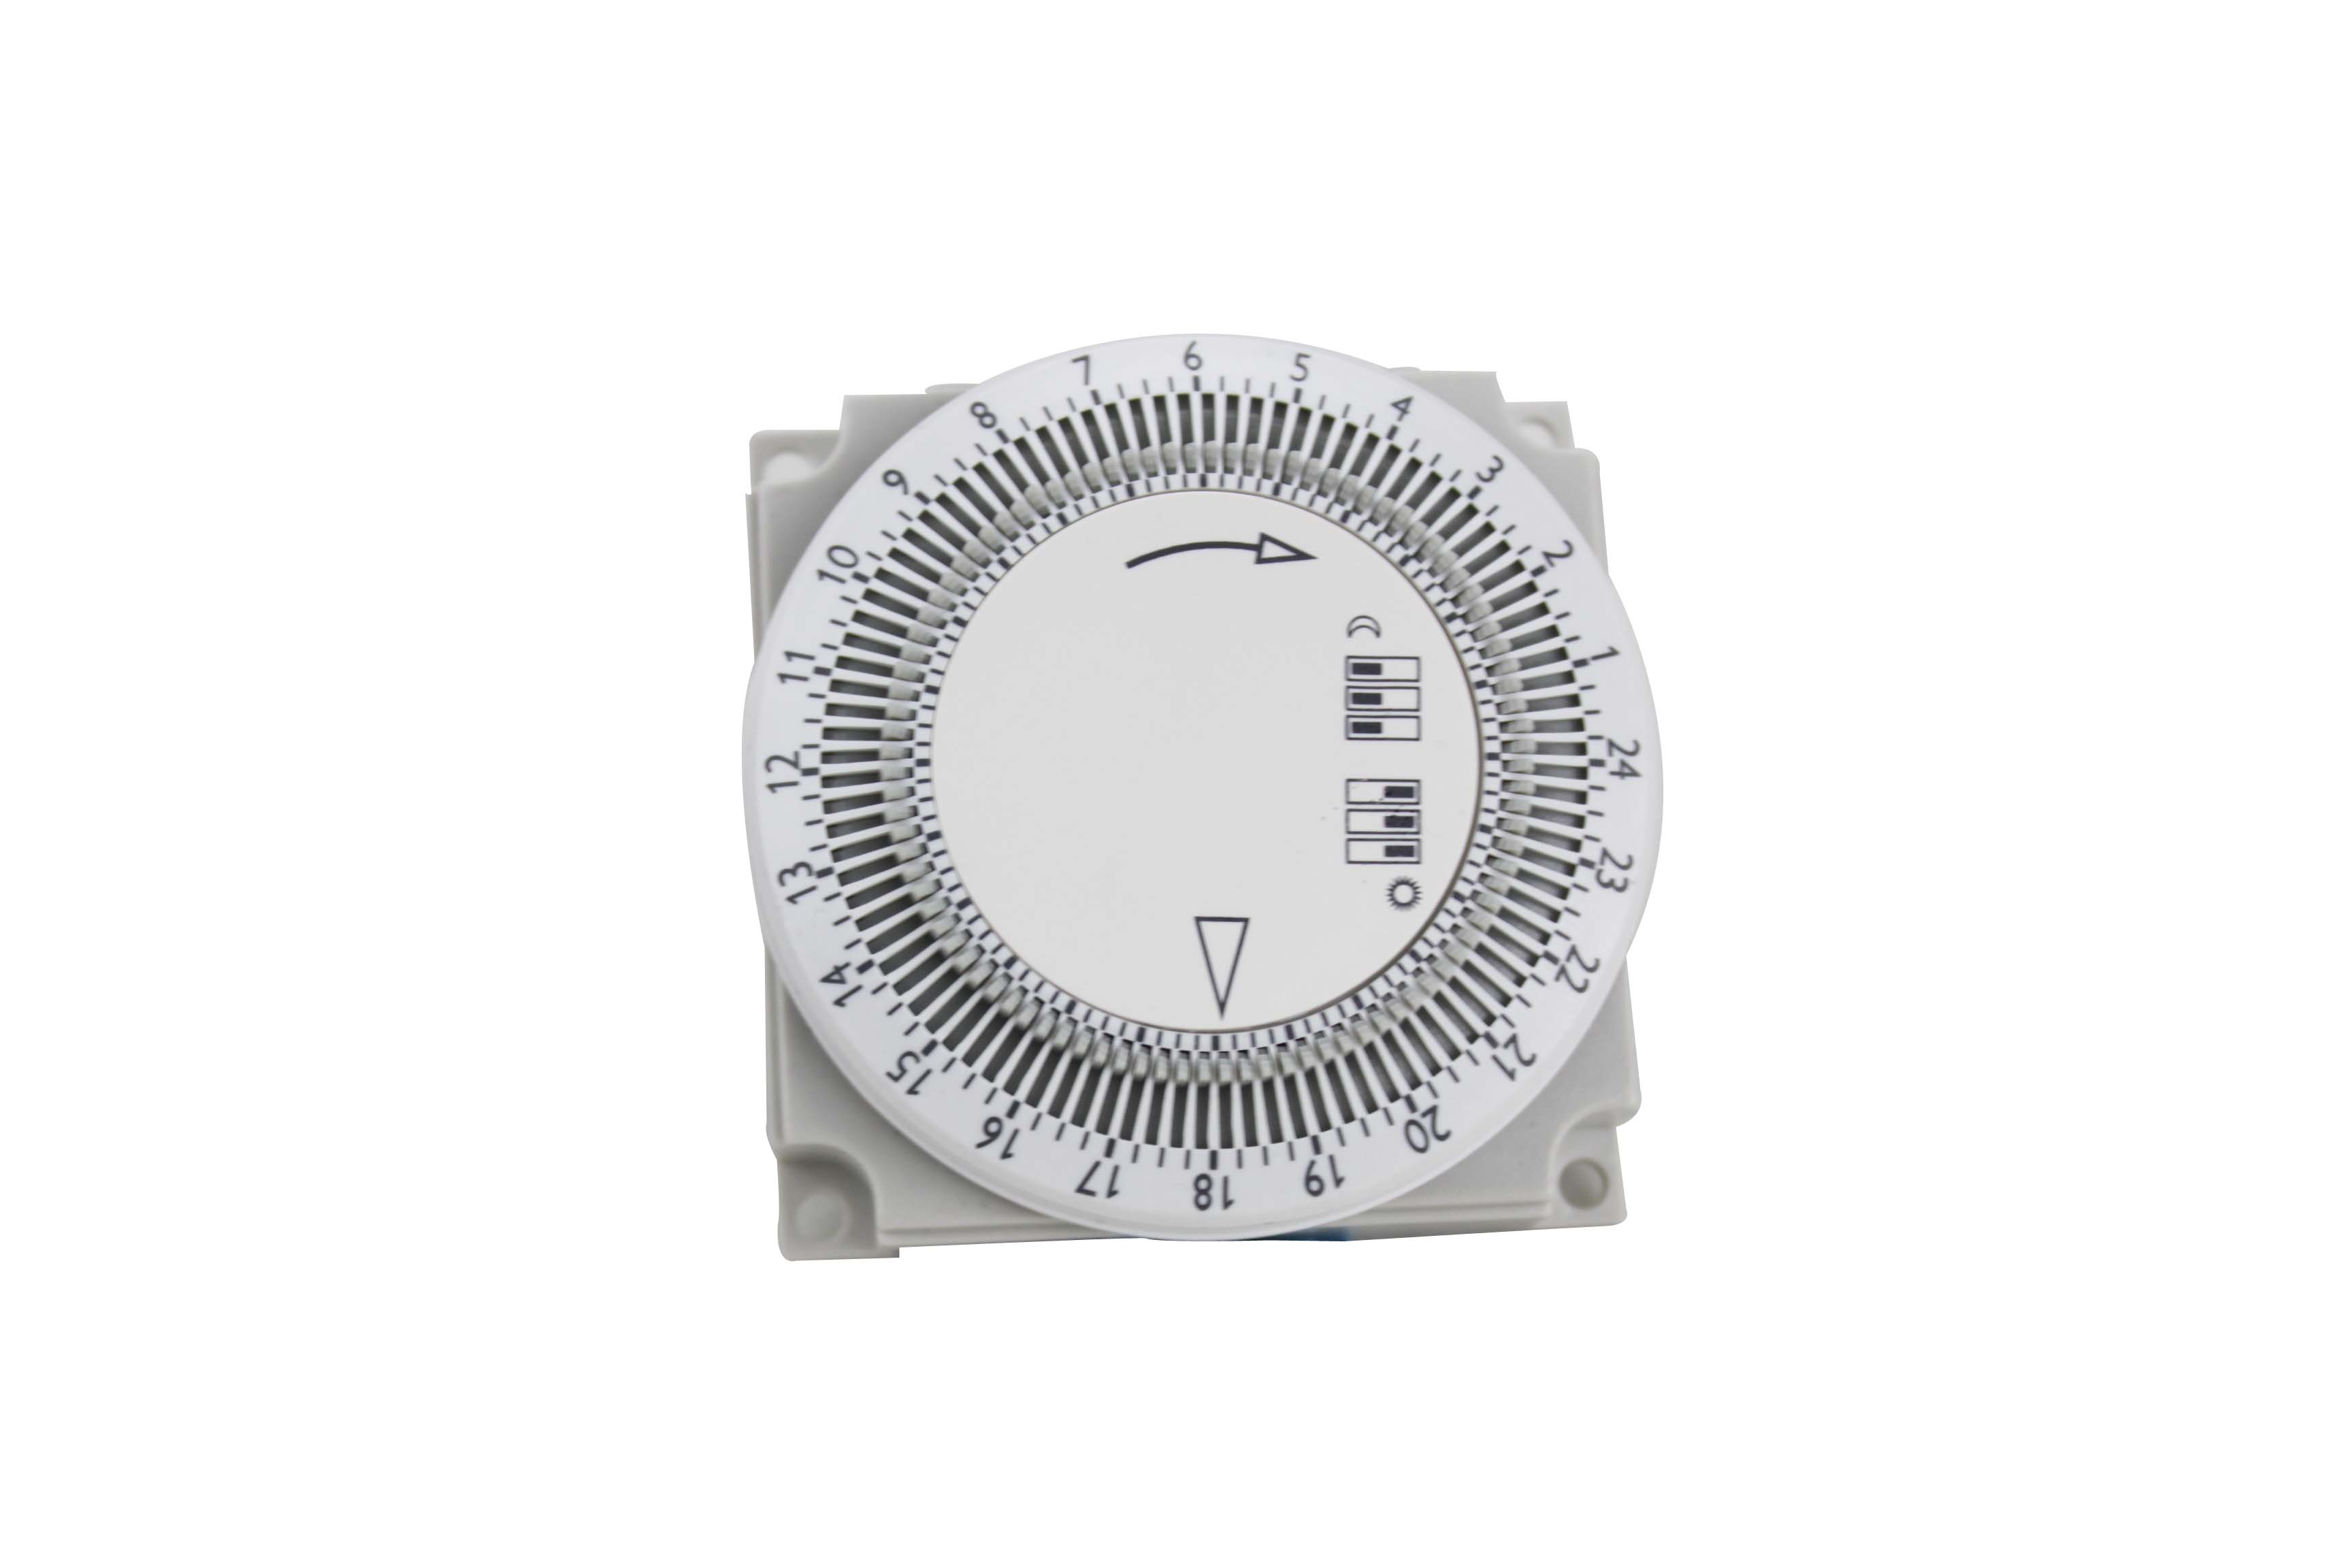 1.2-1.5Vdc mechanical timer